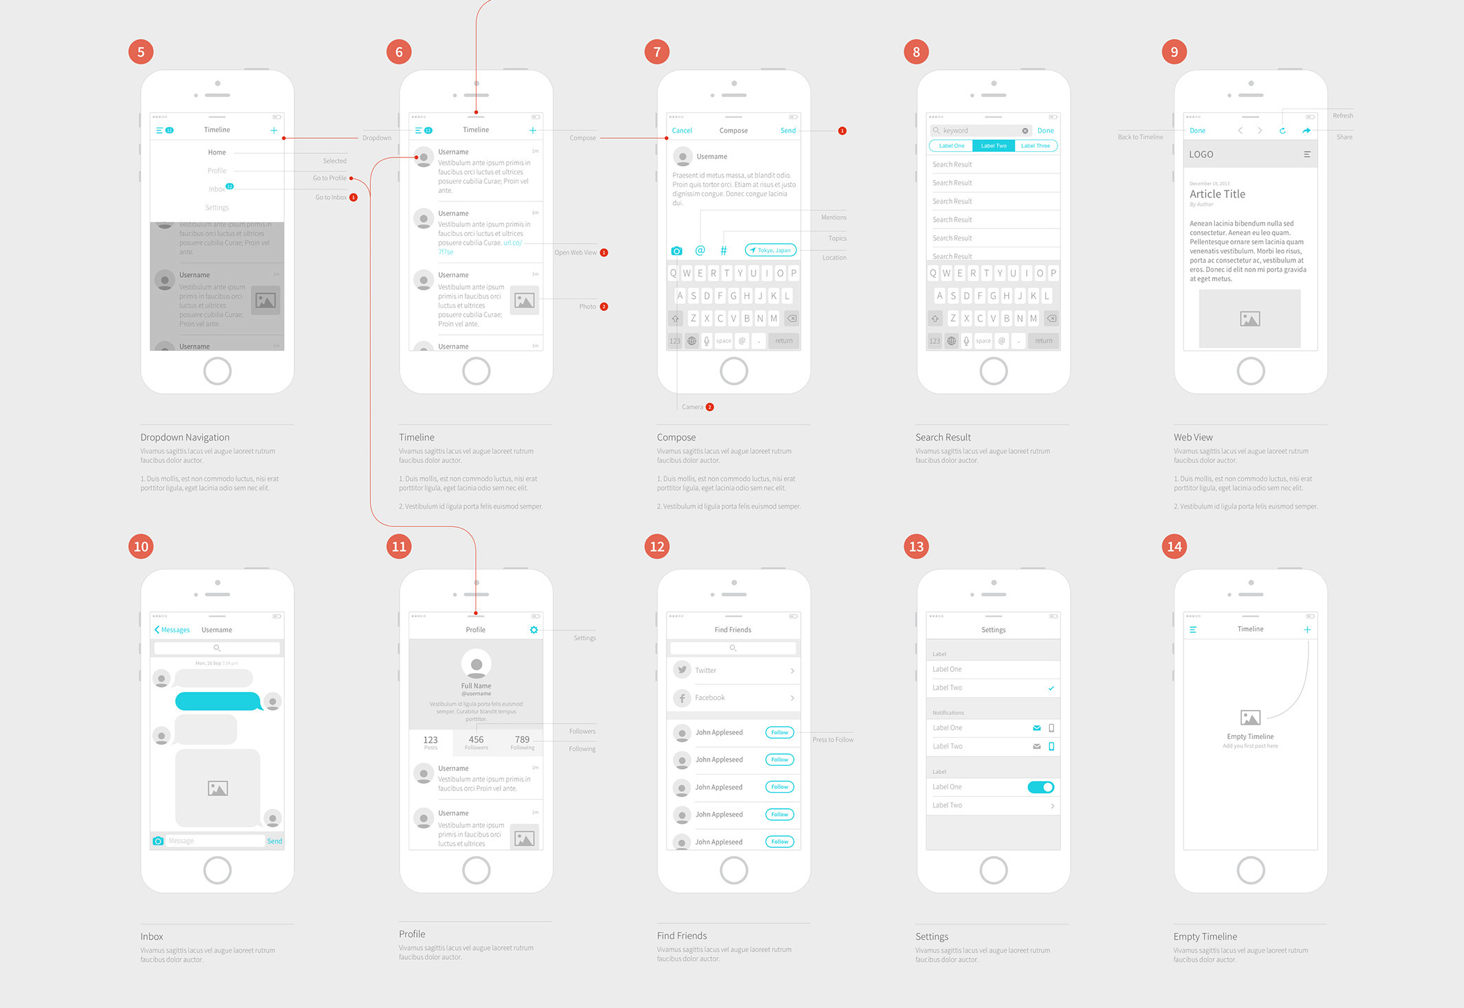 UX Mobile App Design Image